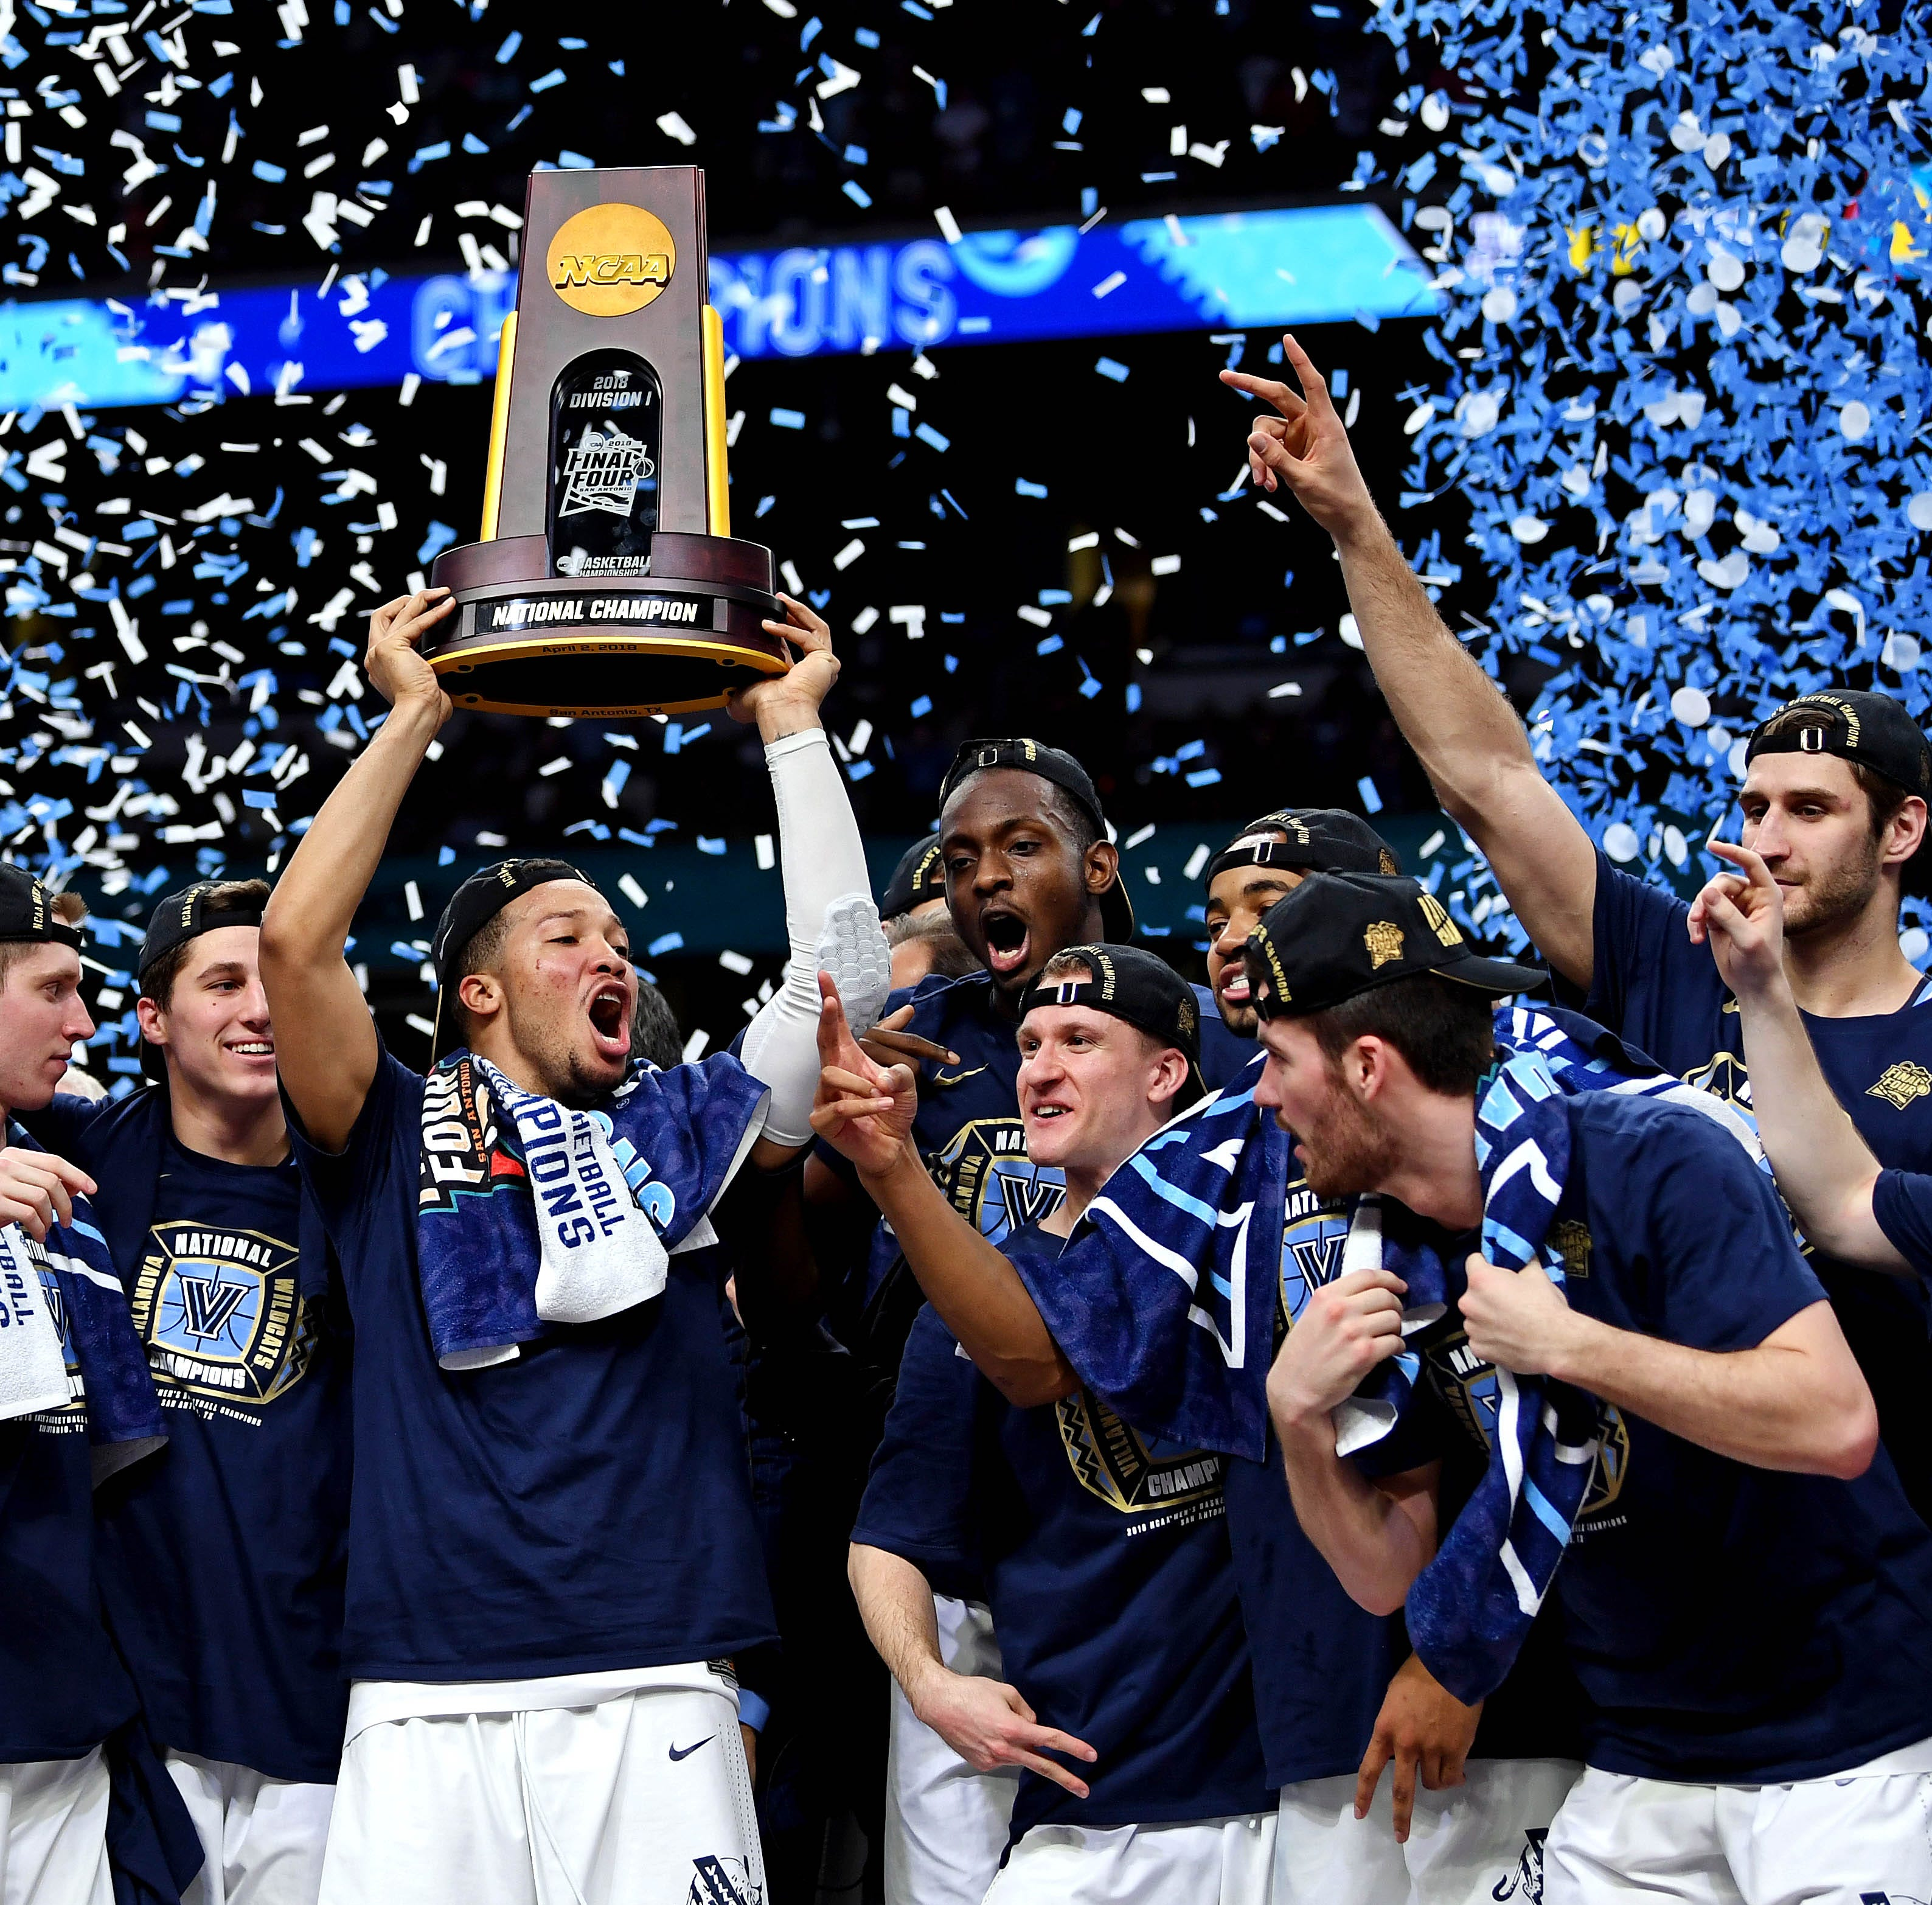 Where to watch NCAA March Madness 2019 in Las Vegas